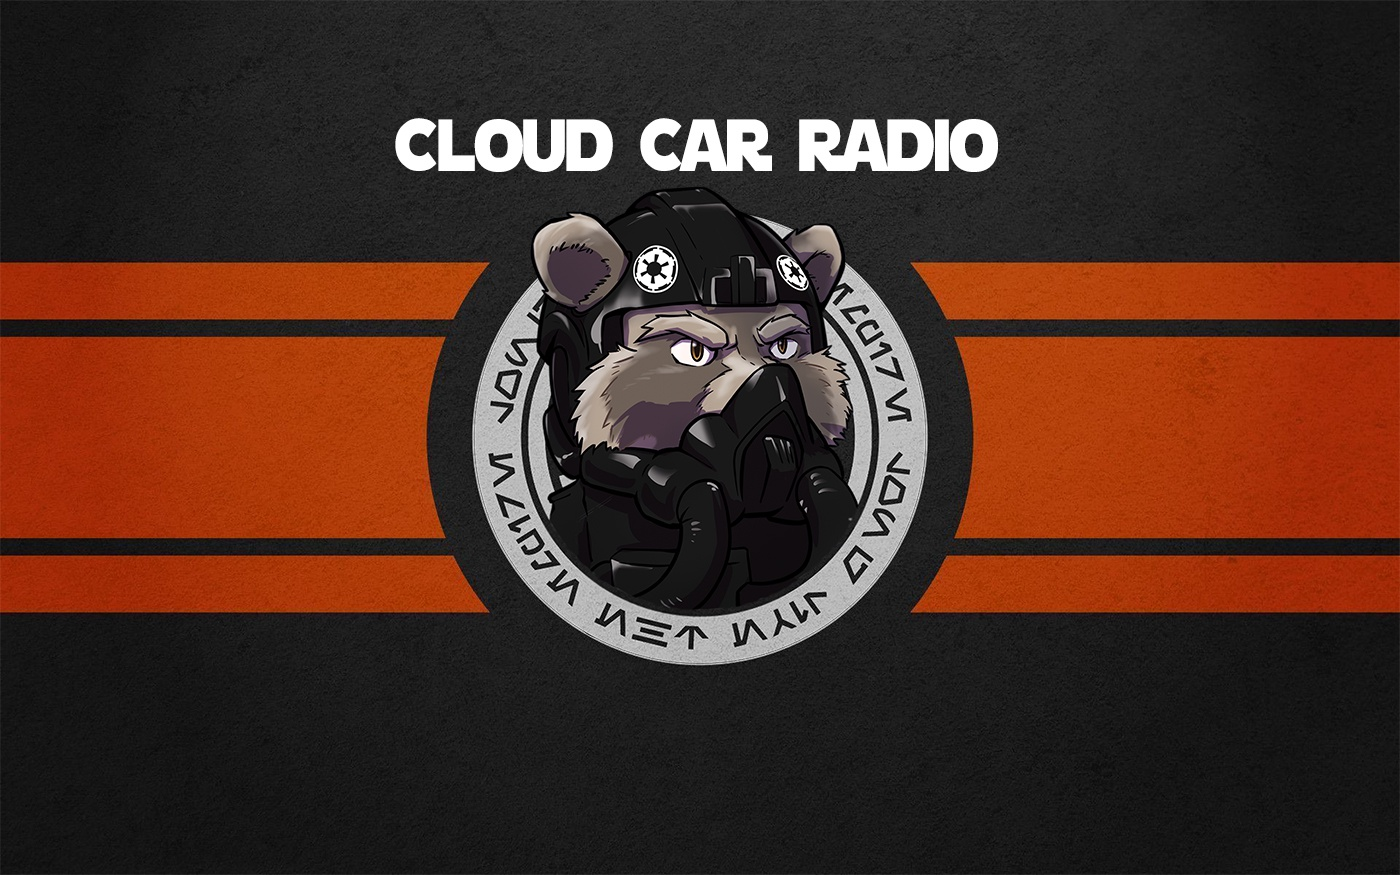 Cloud Car Radio by Raccoon Specialists